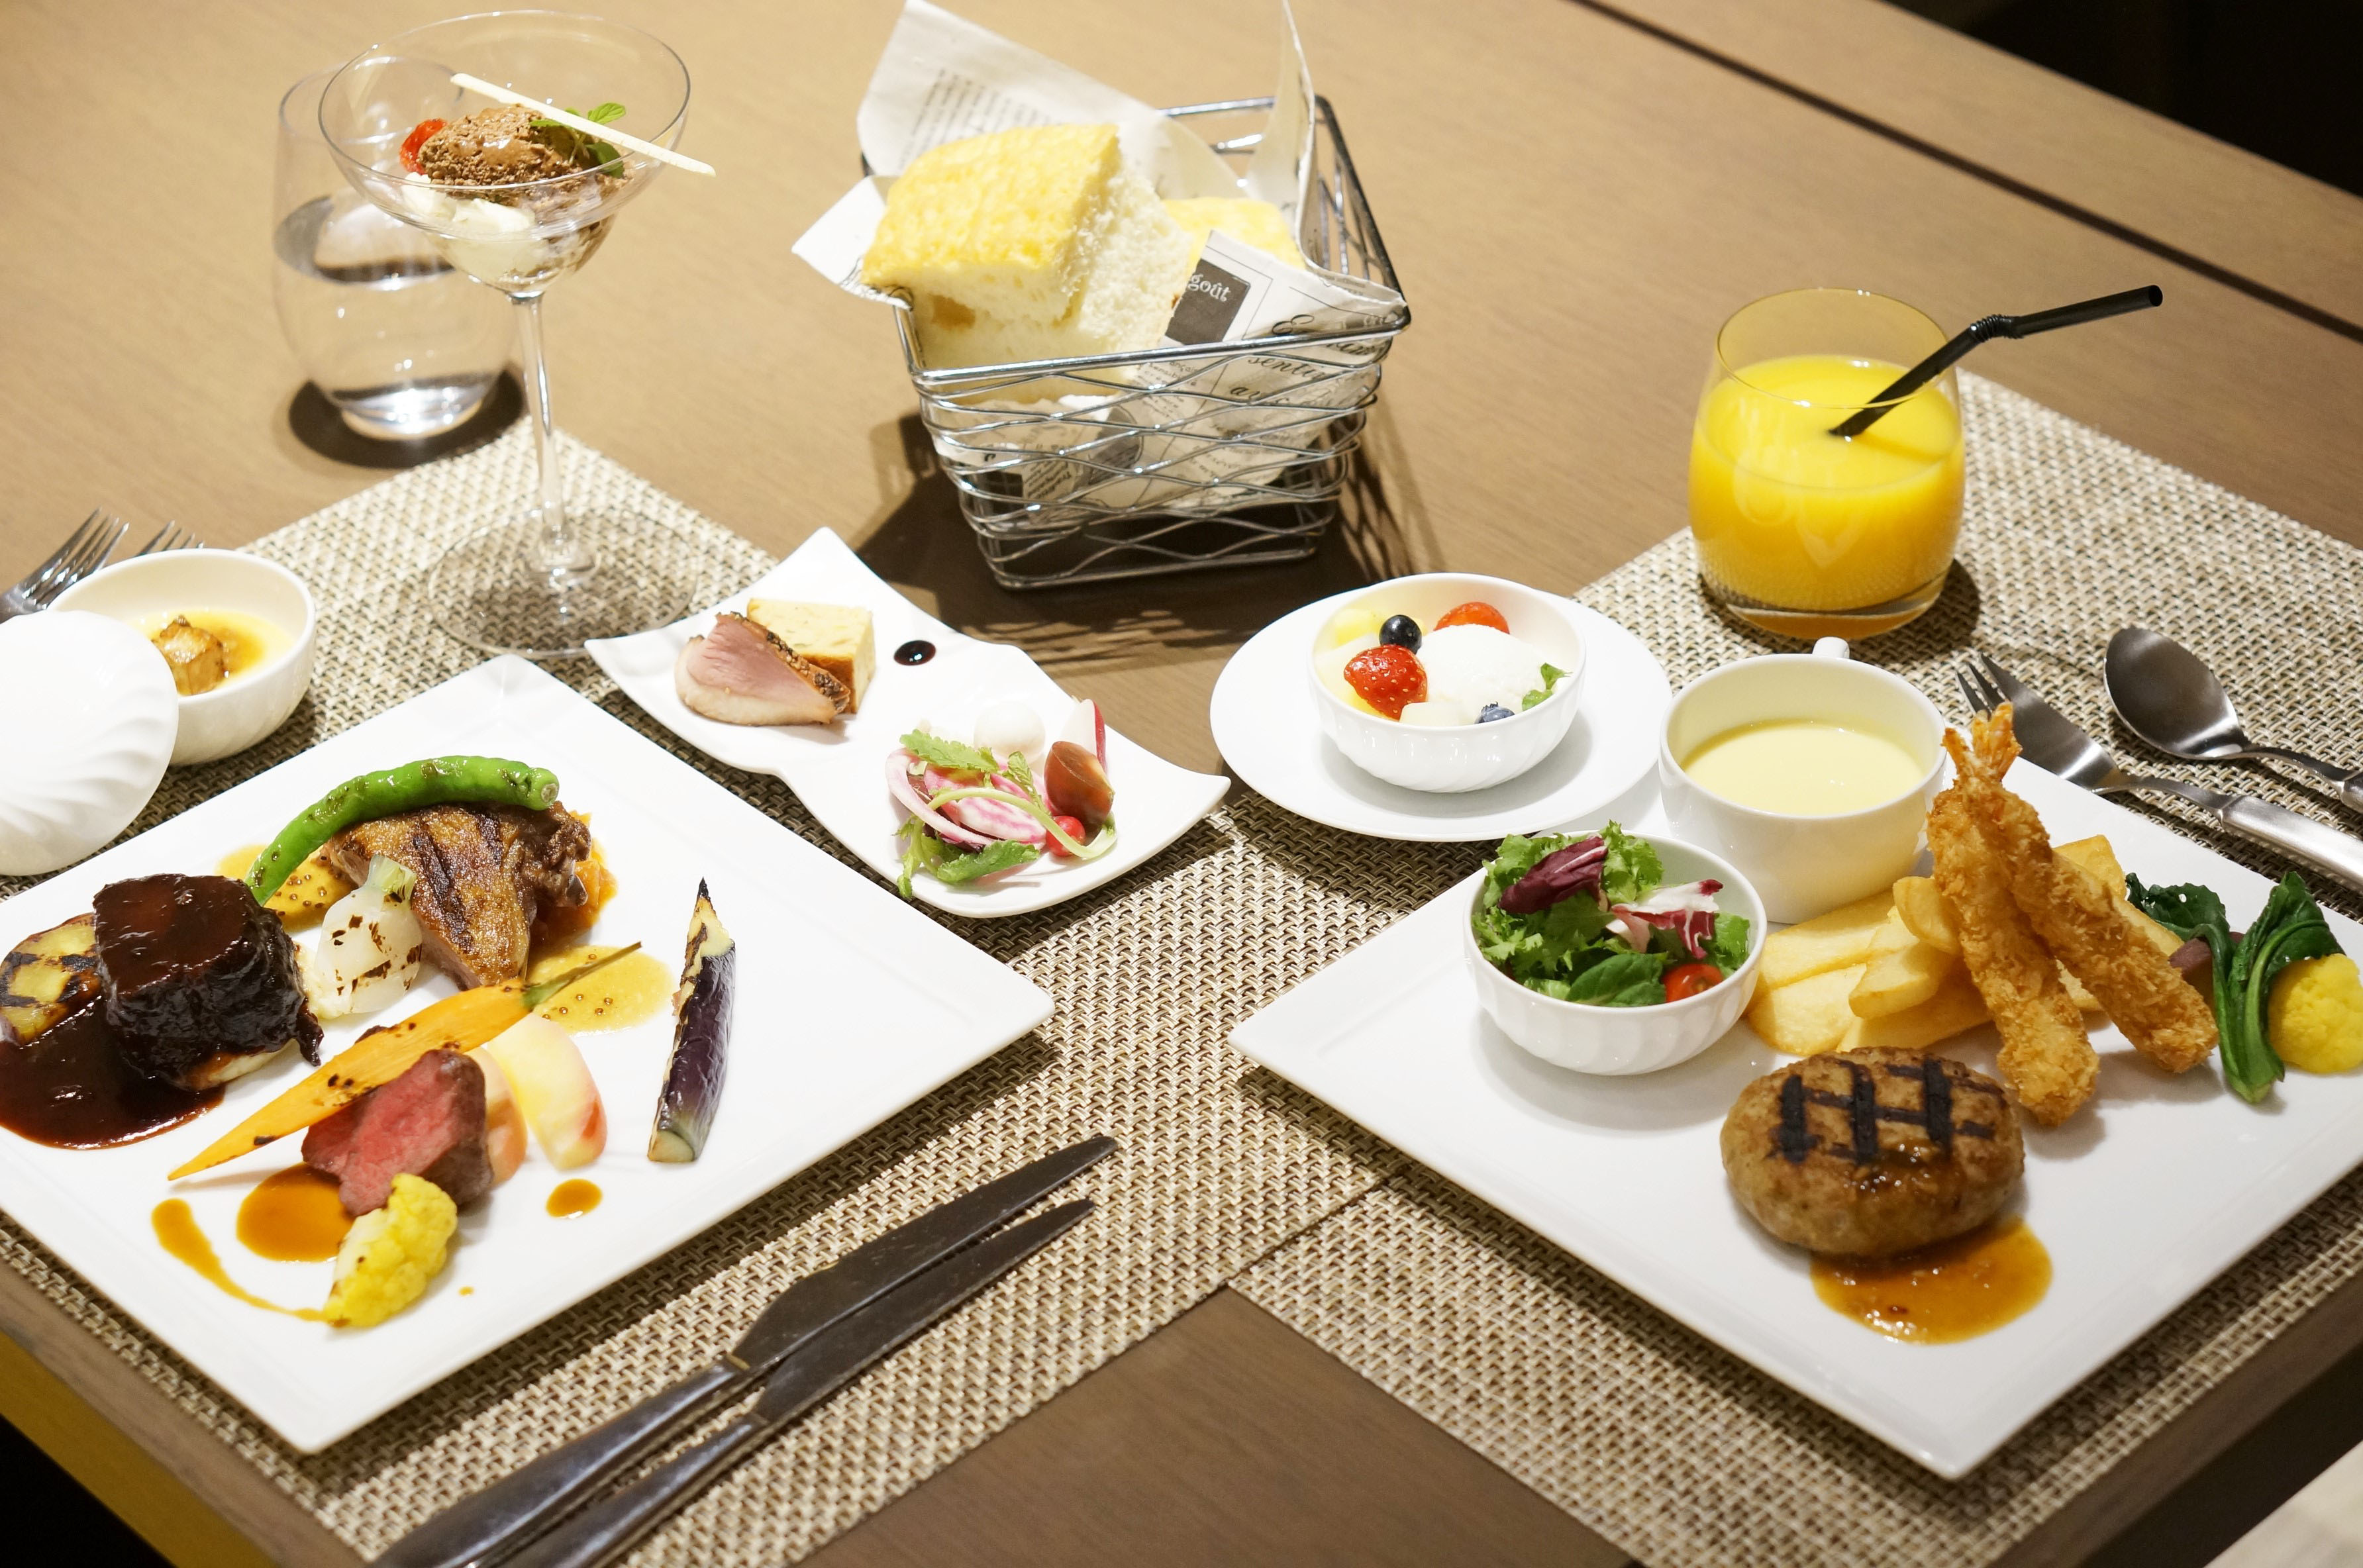 Upscale eats: An adult and children's meal at Lounge & Dining G makes for a great holiday experience for the family. | MAI HAYASHI